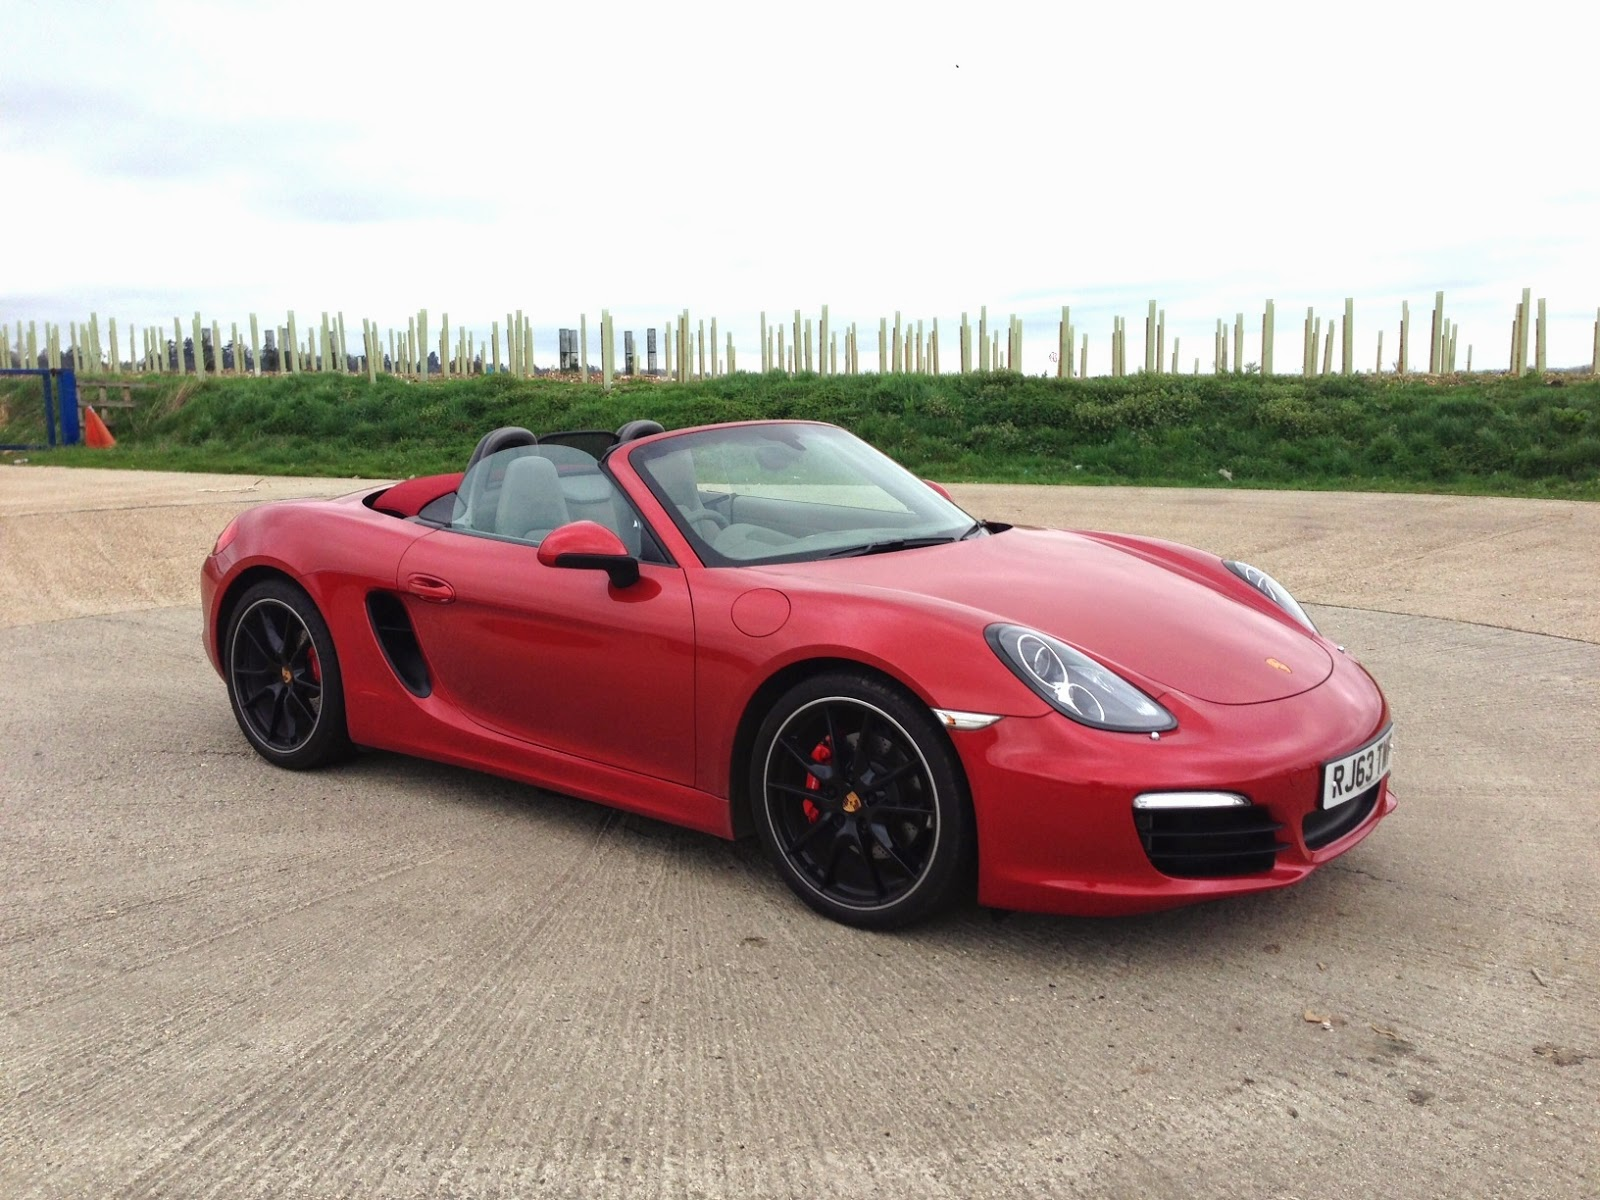 2014 Porsche Boxster S Amaranth Red